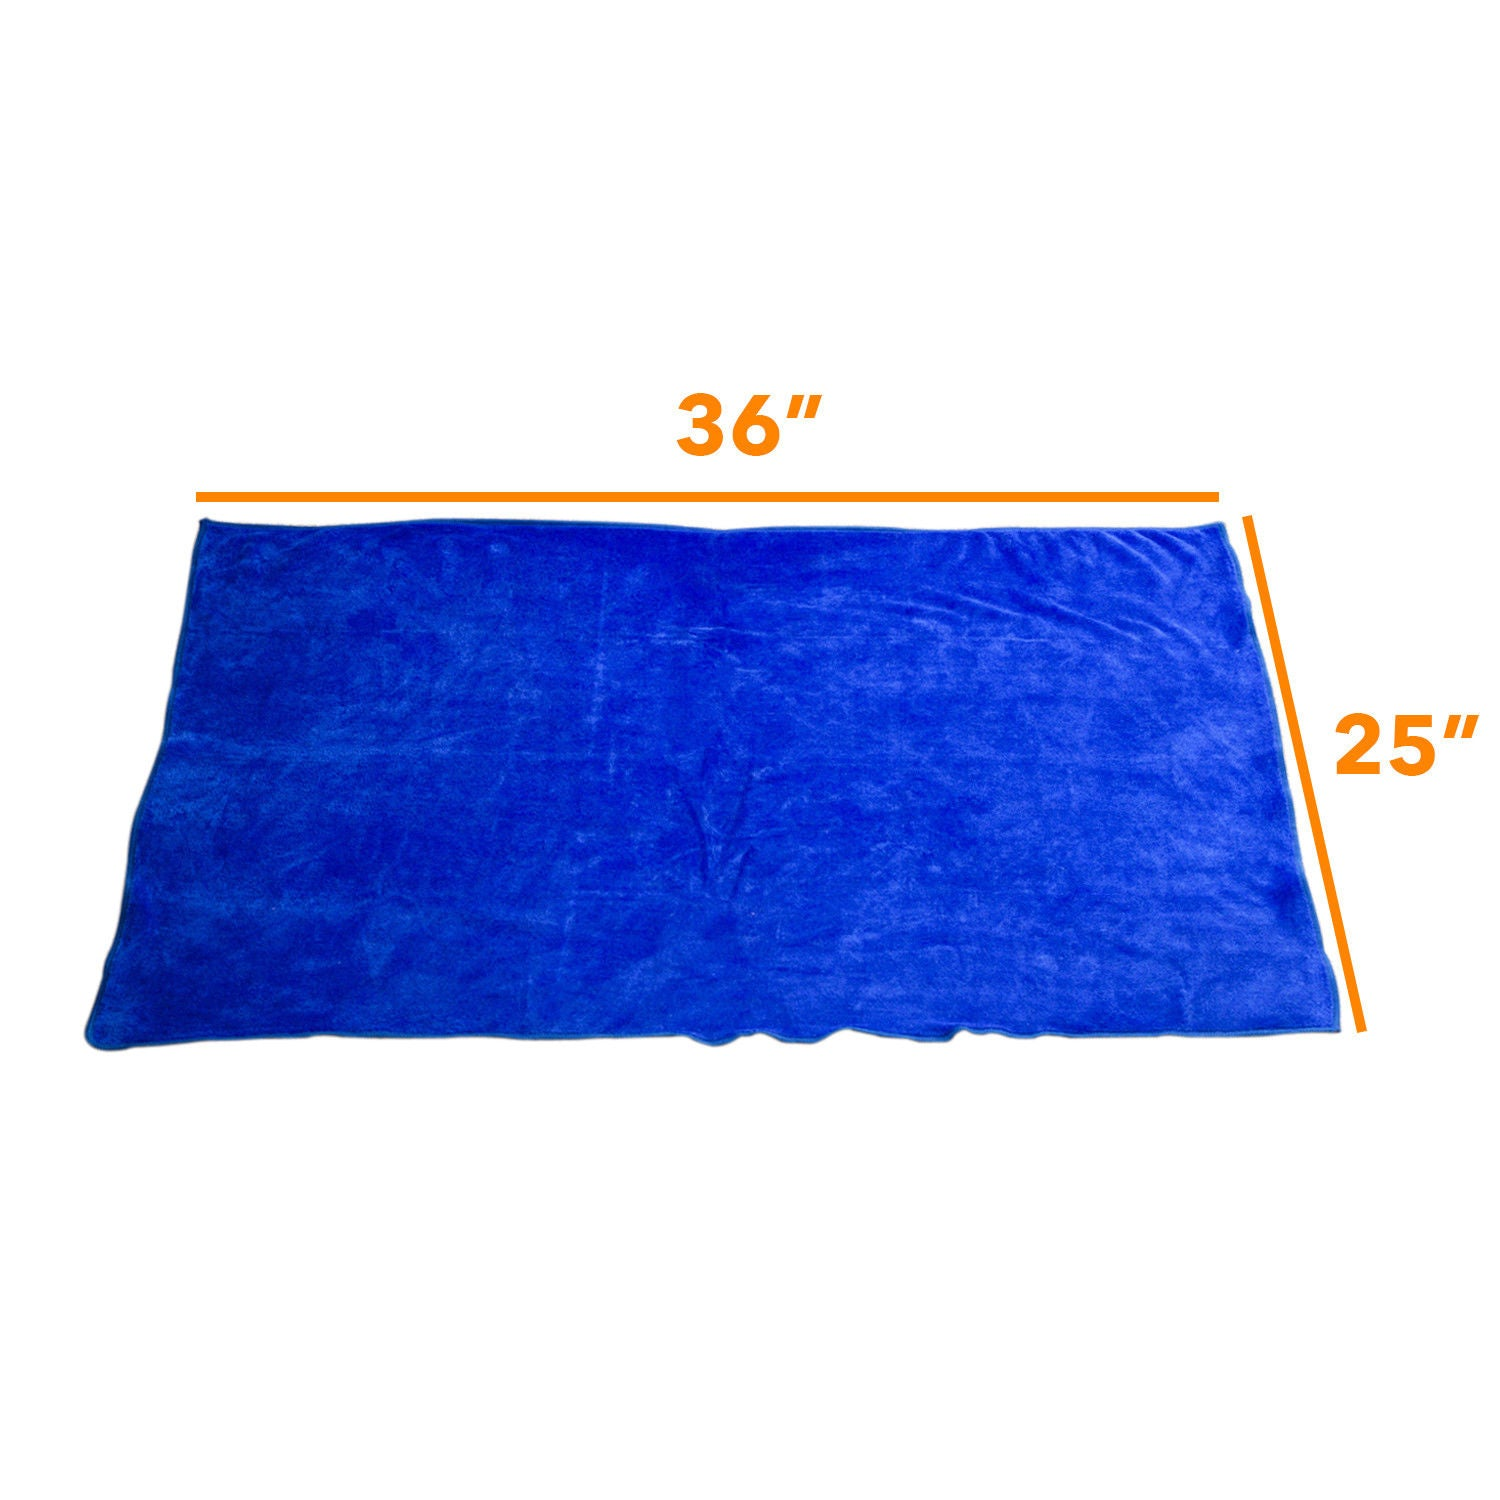 Large Extra Soft Microfiber Cleaning Cloth - No Scratch Car Polishing Towel